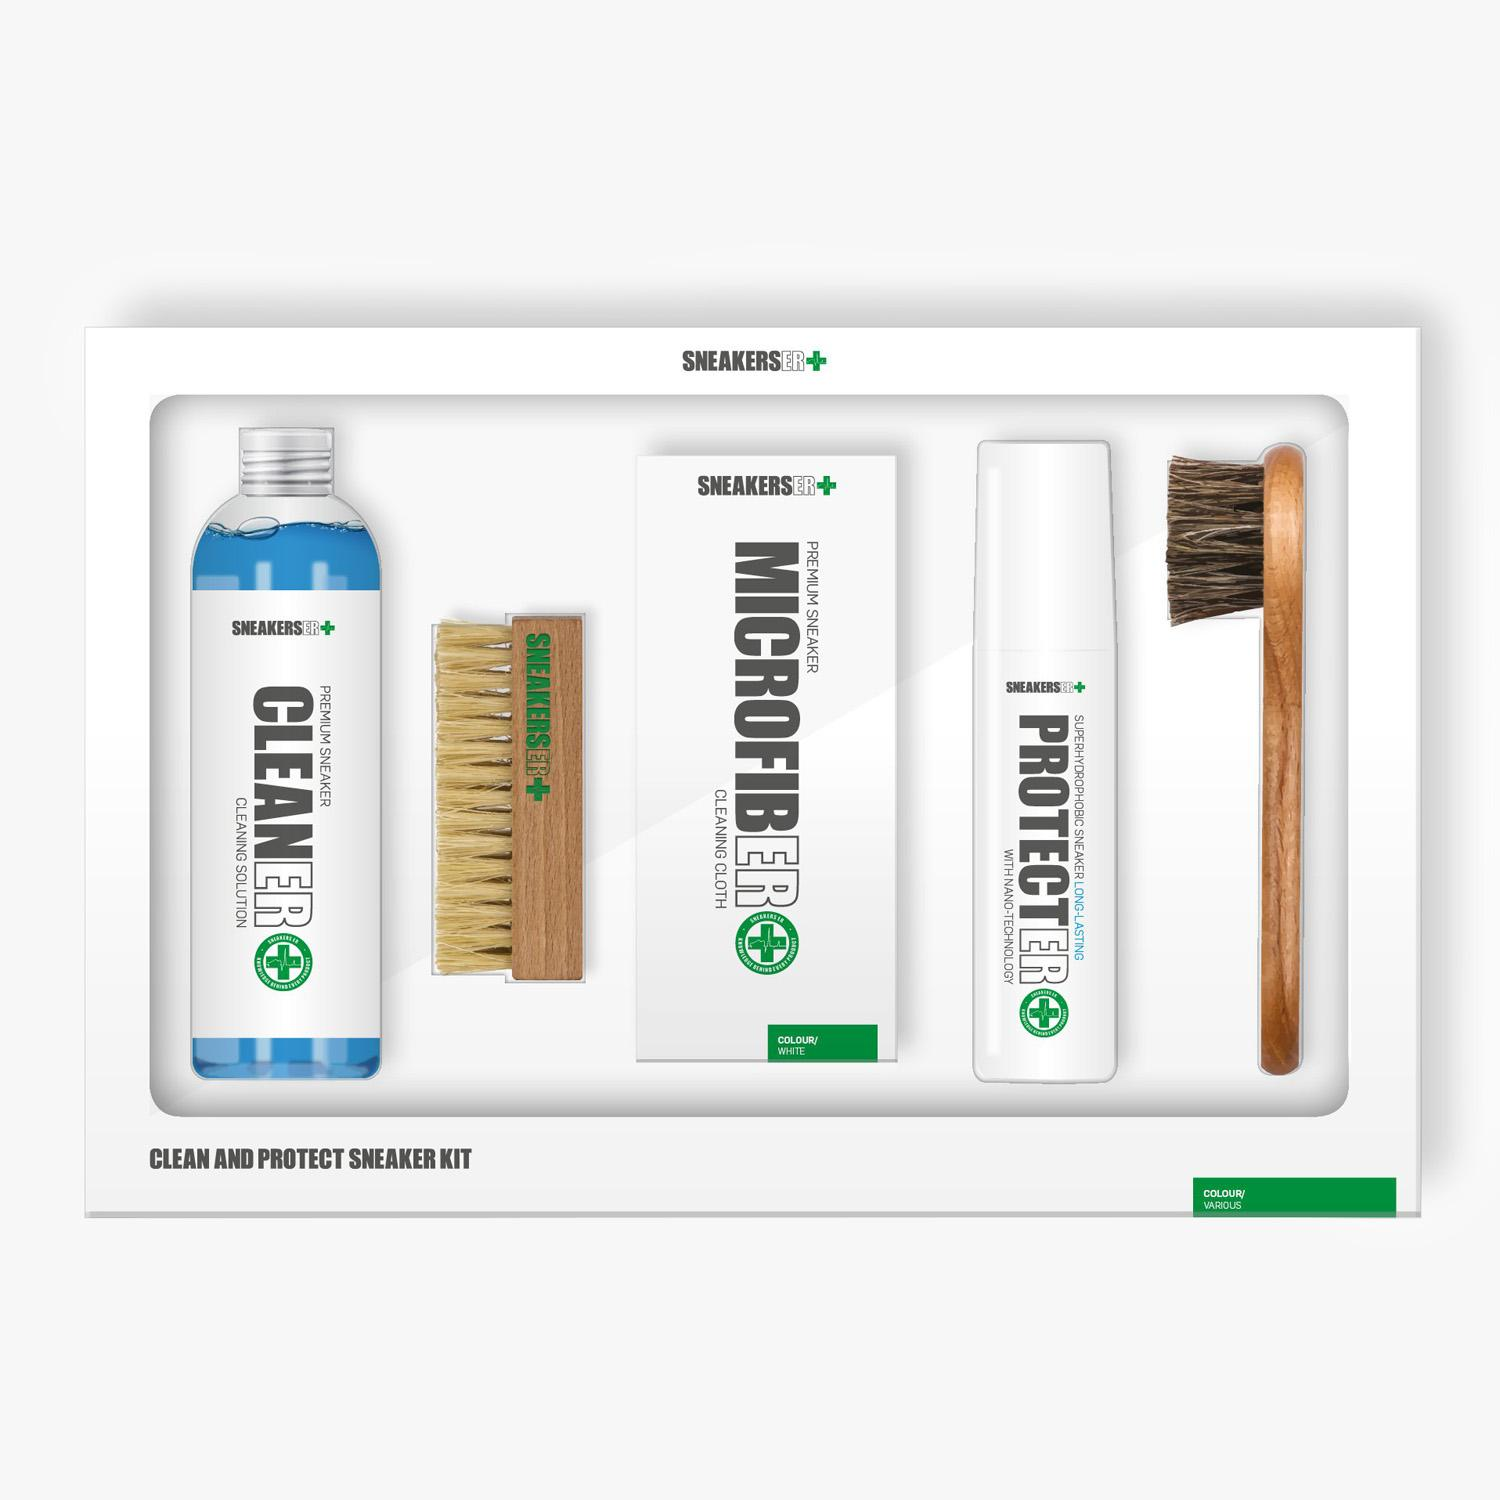 SneakersER Care Kit Clean And Protect Sneaker